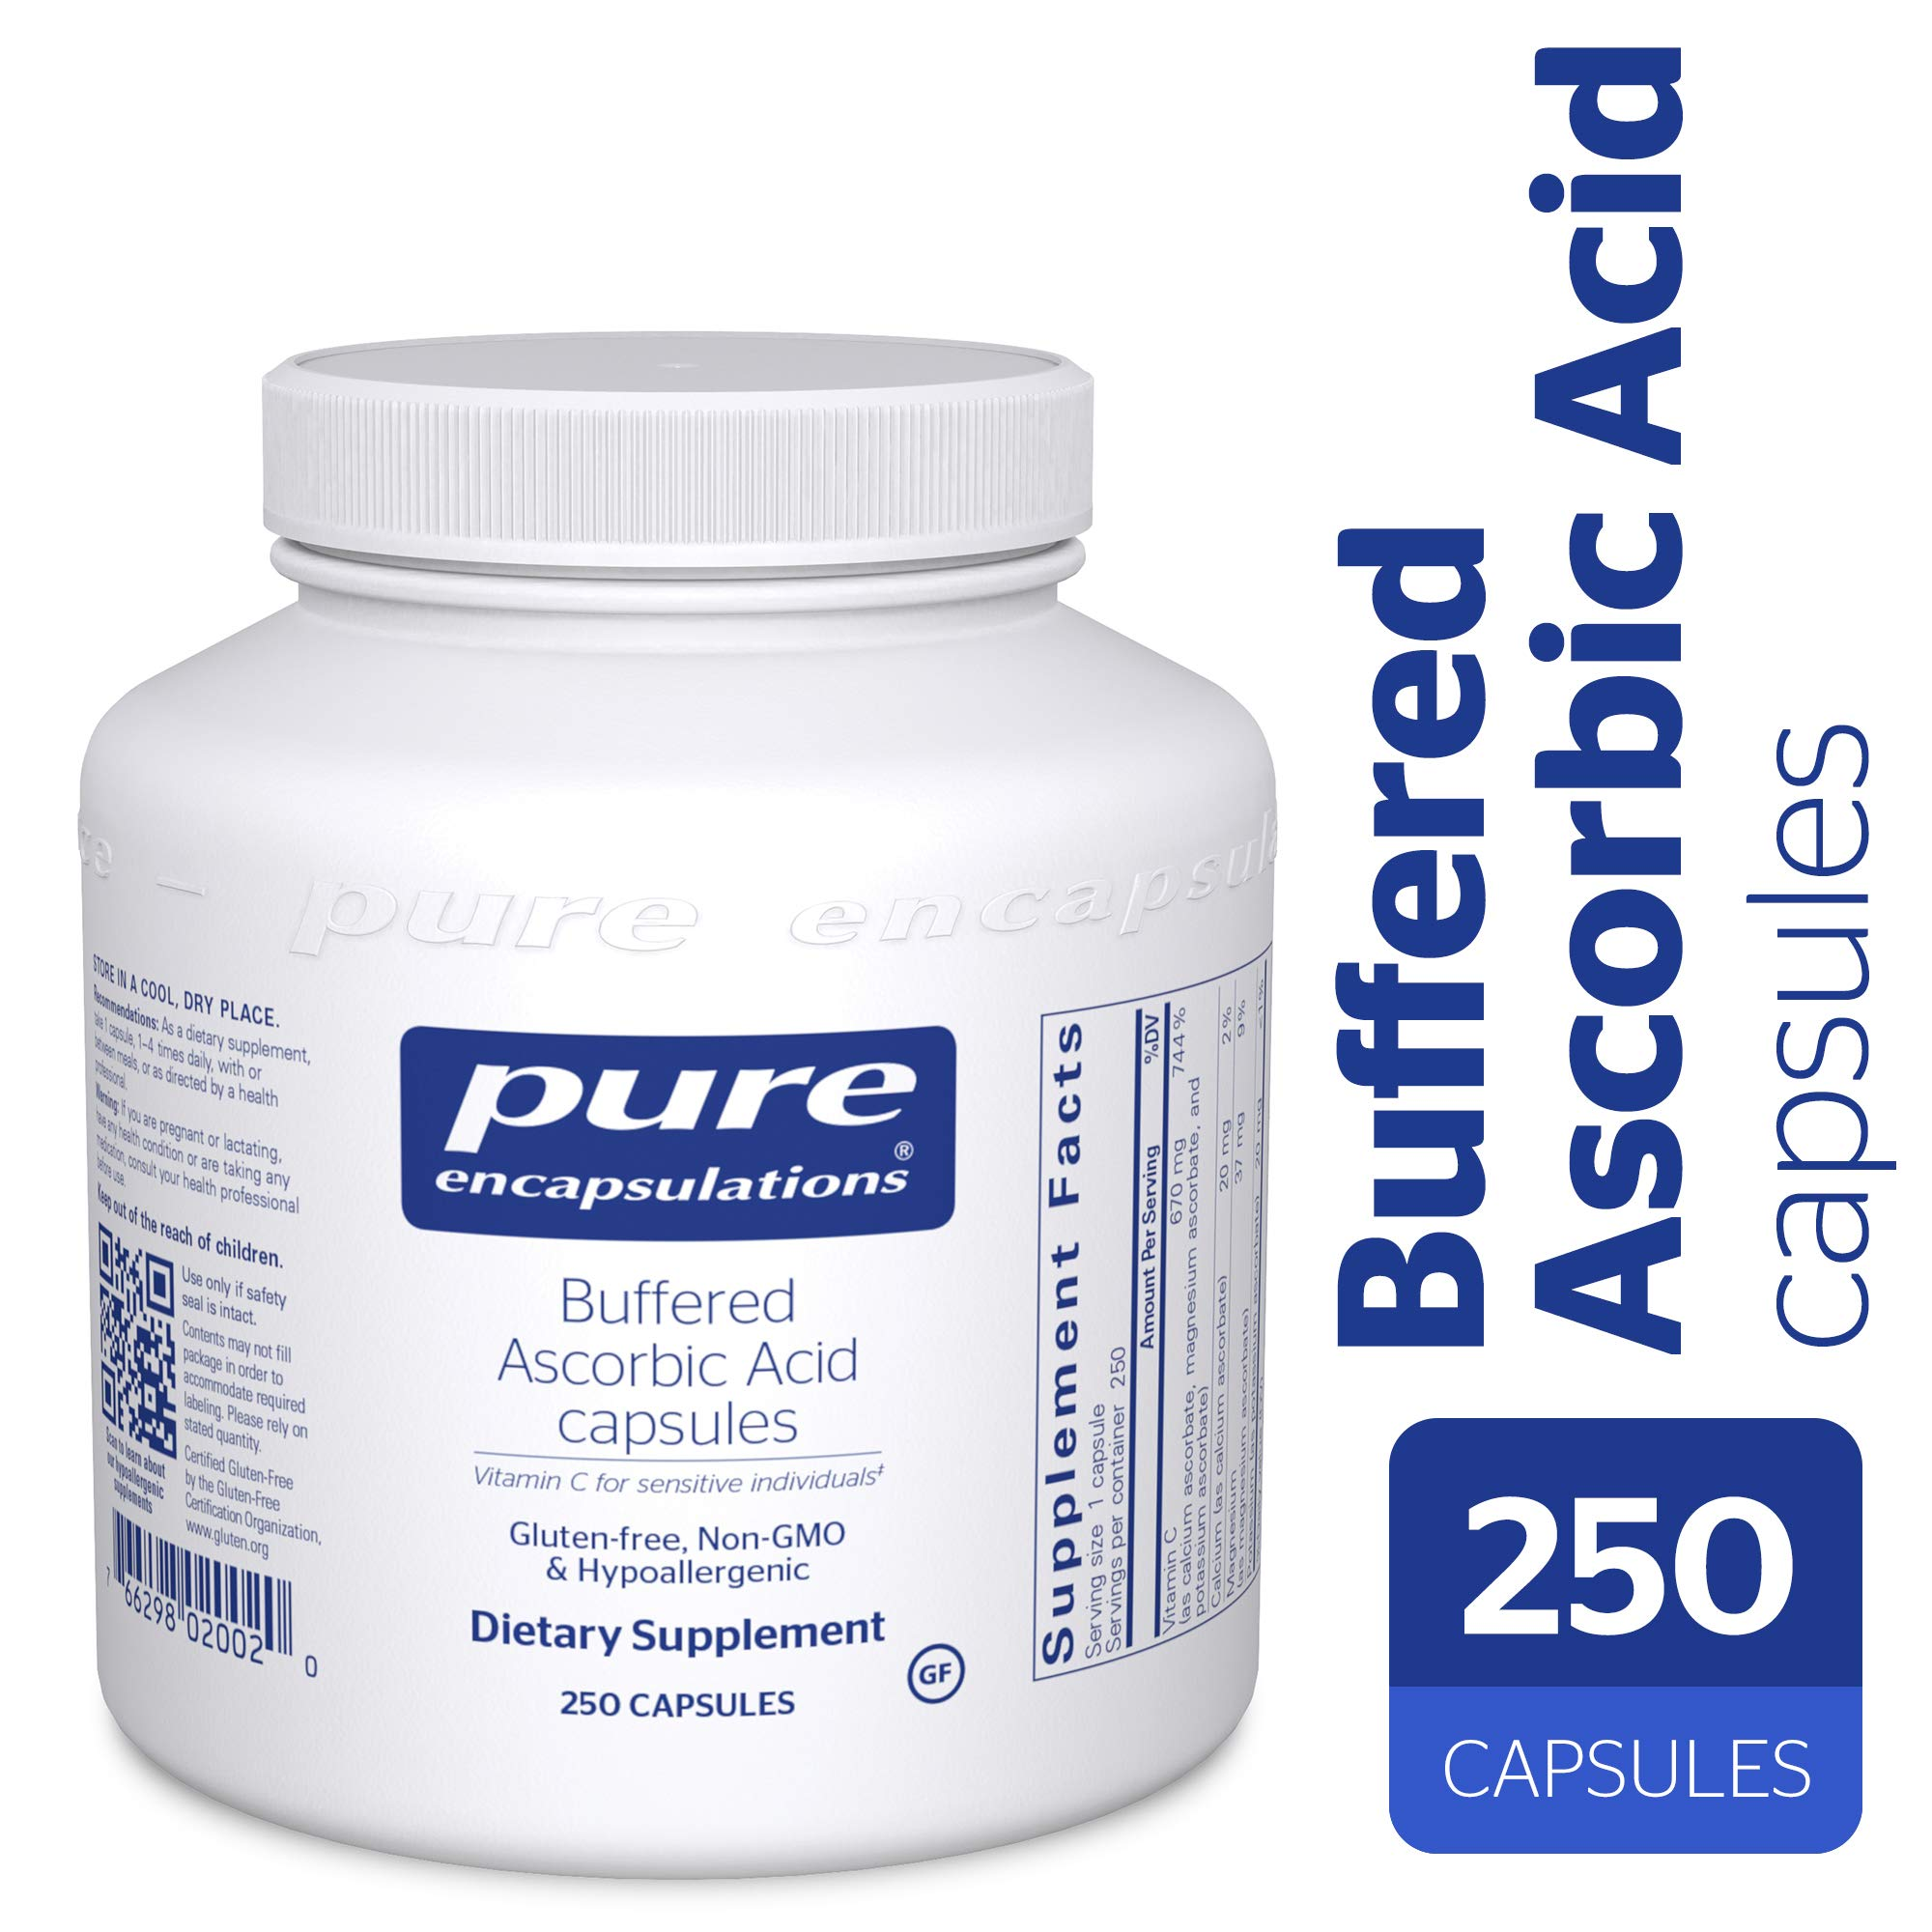 Pure Encapsulations - Buffered Ascorbic Acid - Vitamin C for Sensitive Individuals - 250 Capsules by Pure Encapsulations